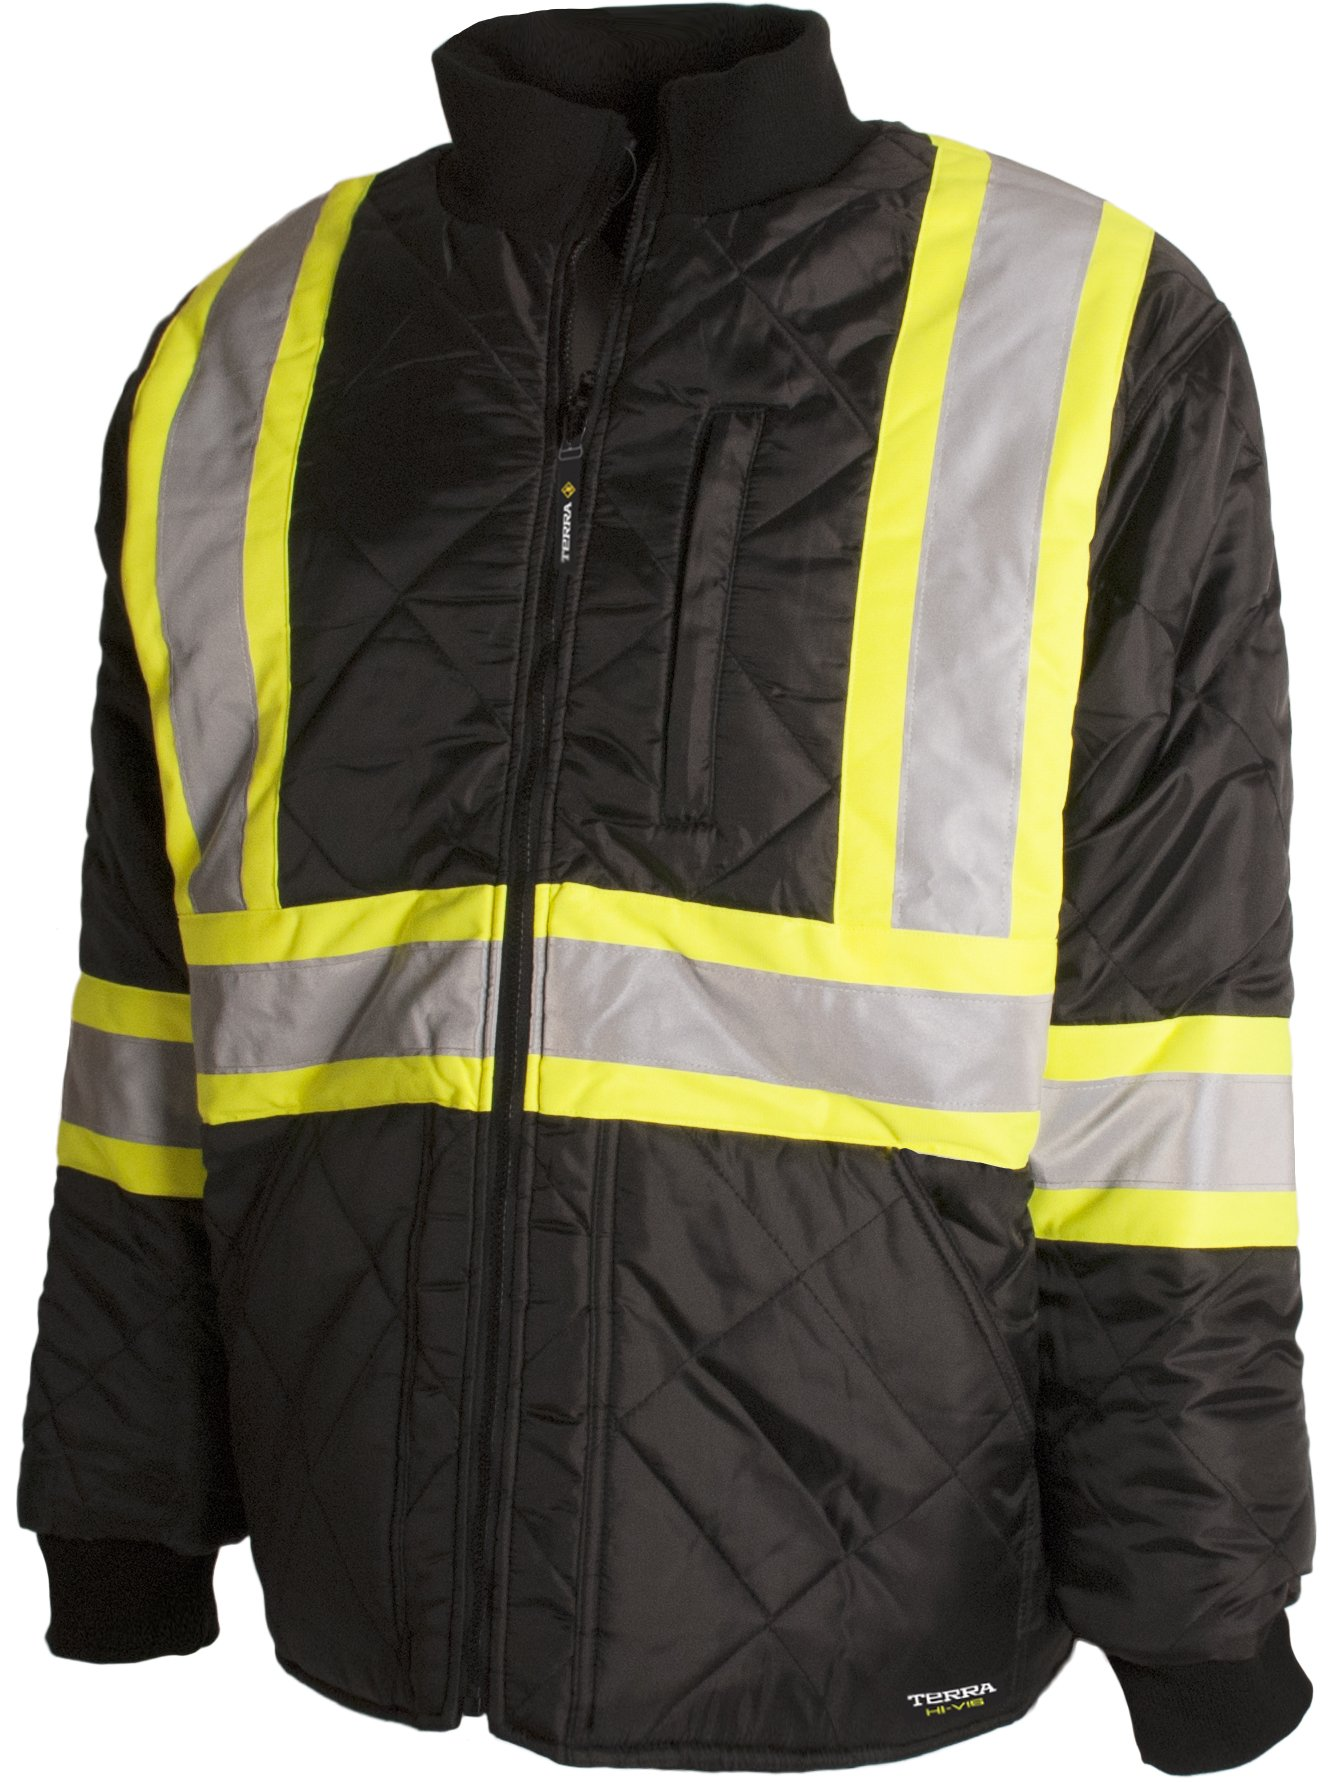 Terra 116505BKM High-Visibility Quilted And Lined Reflective Safety Freezer Jacket, Black, Medium by Terra (Image #1)